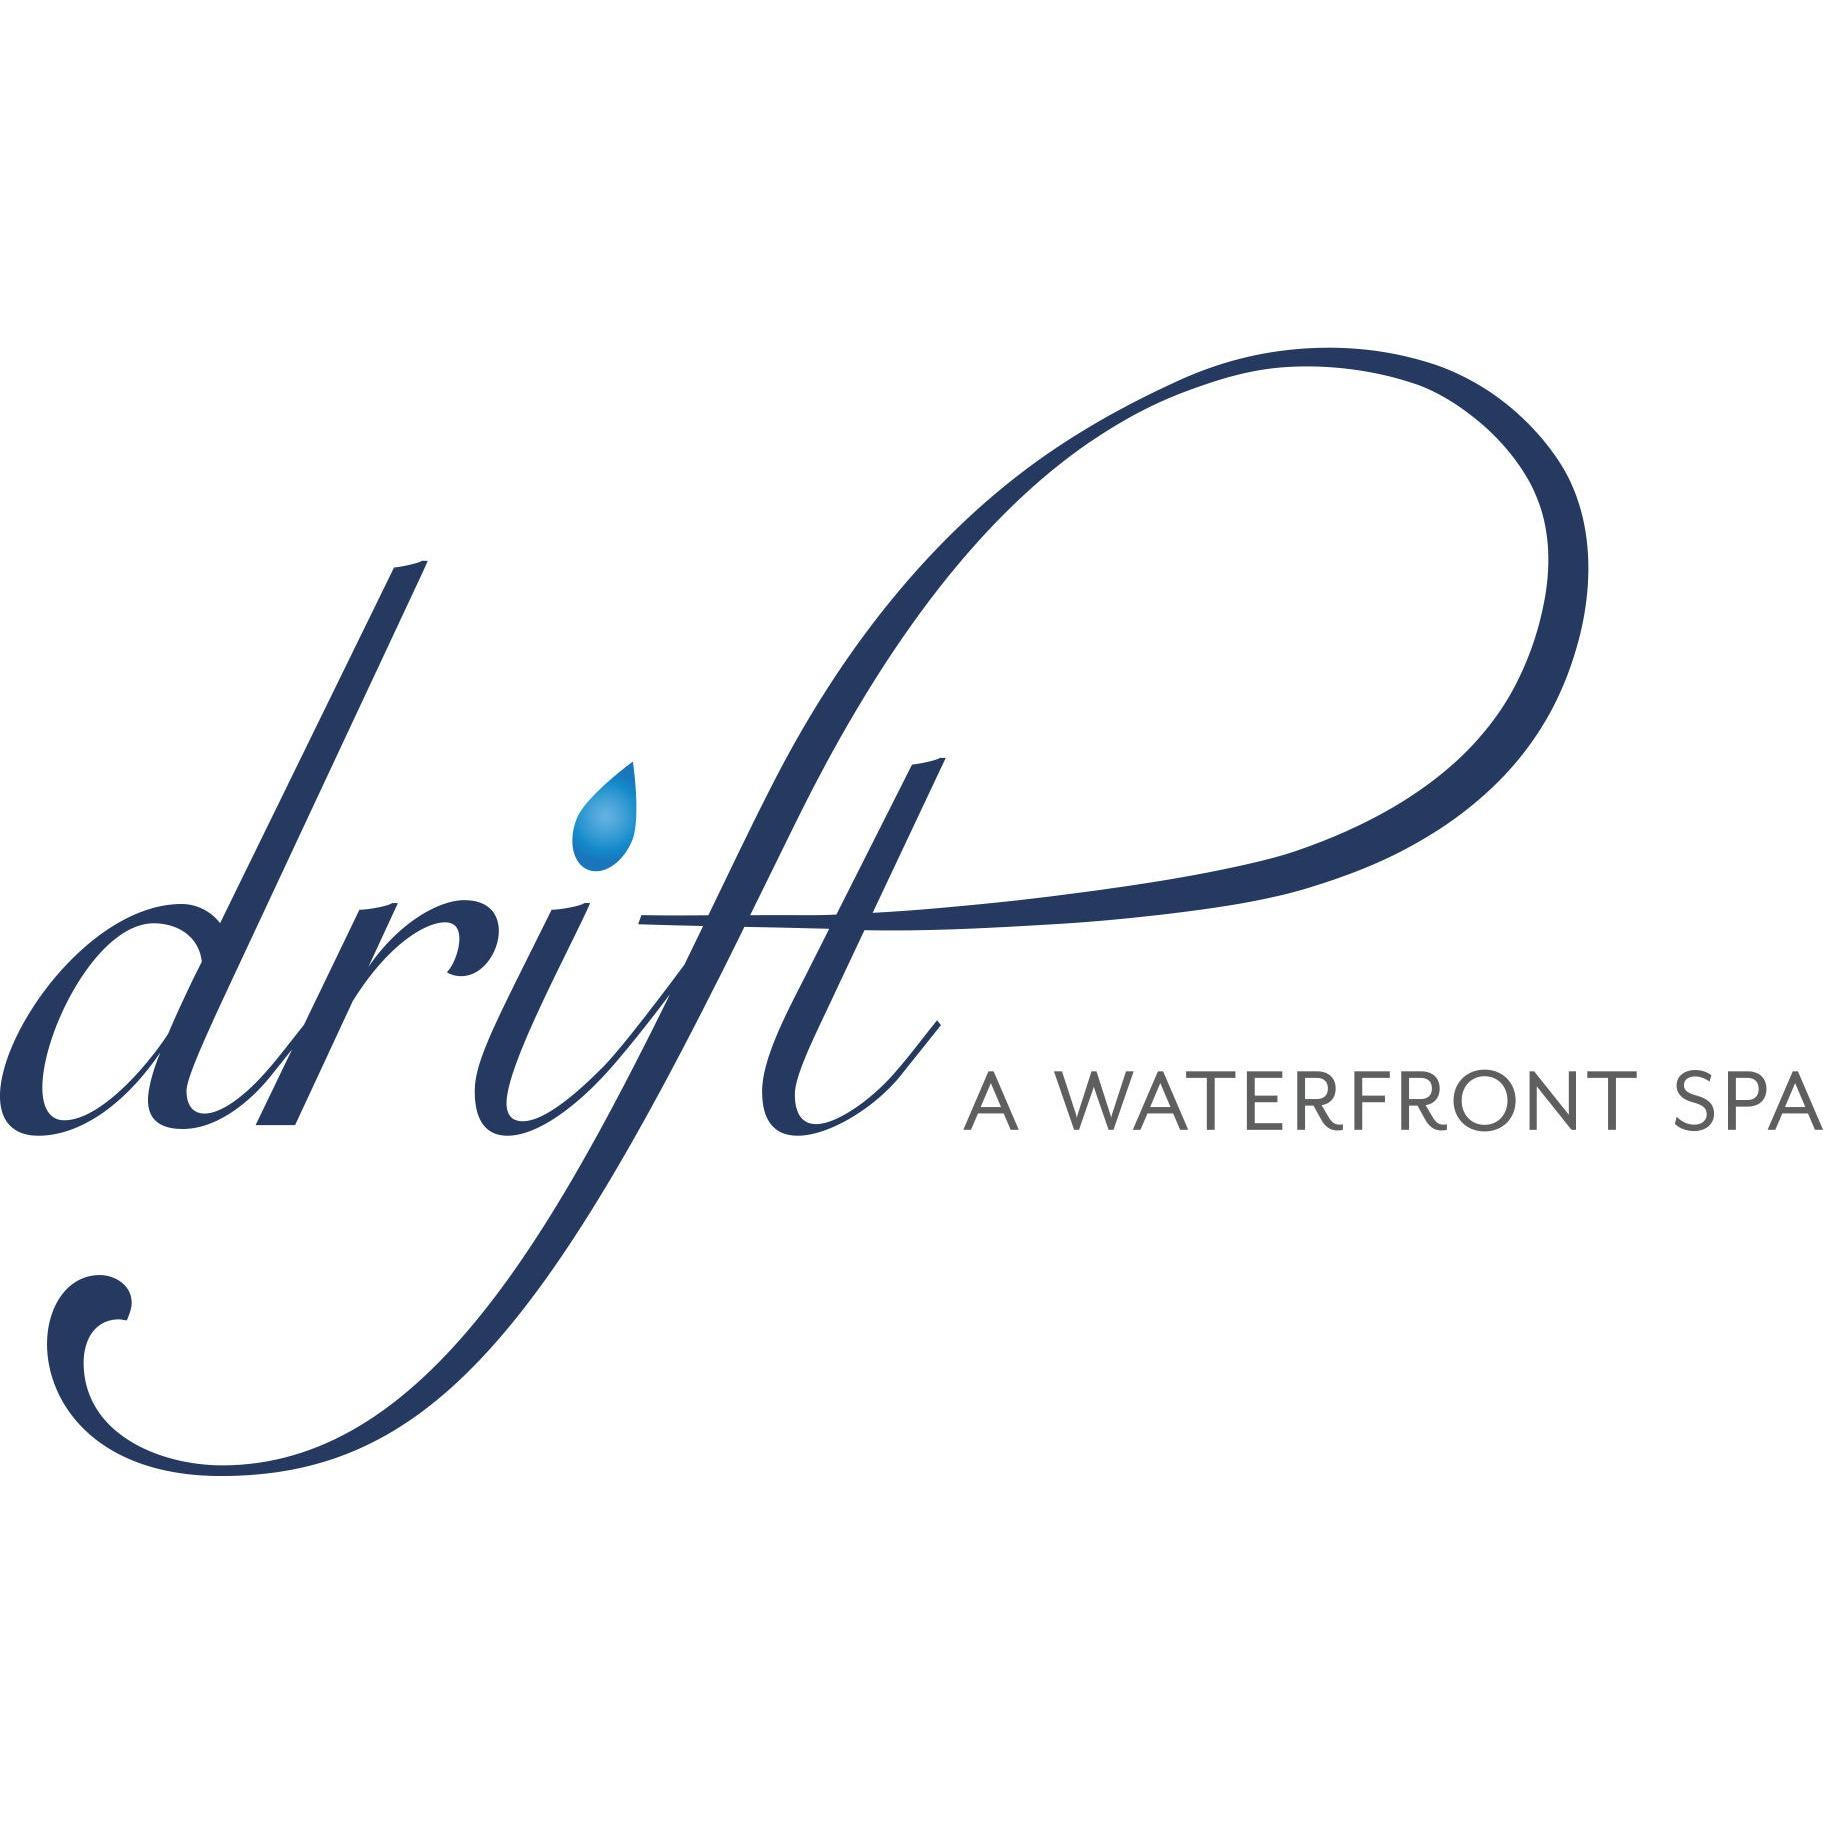 Drift a Waterfront Spa